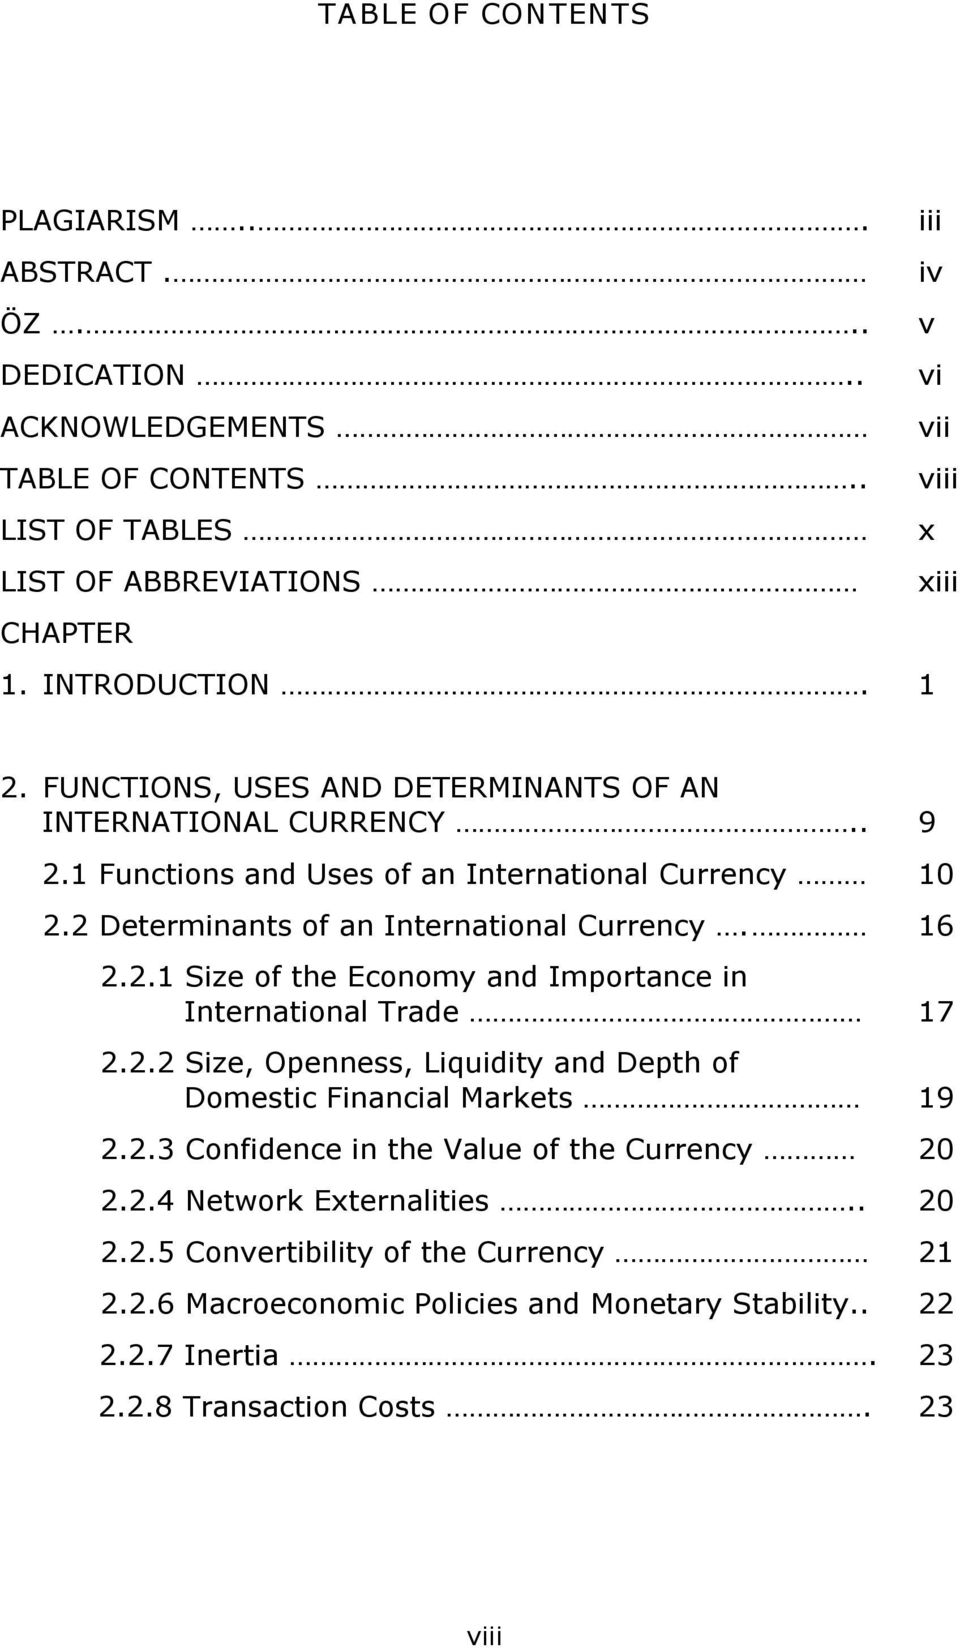 2 Determinants of an International Currency. 16 2.2.1 Size of the Economy and Importance in International Trade 17 2.2.2 Size, Openness, Liquidity and Depth of Domestic Financial Markets 19 2.